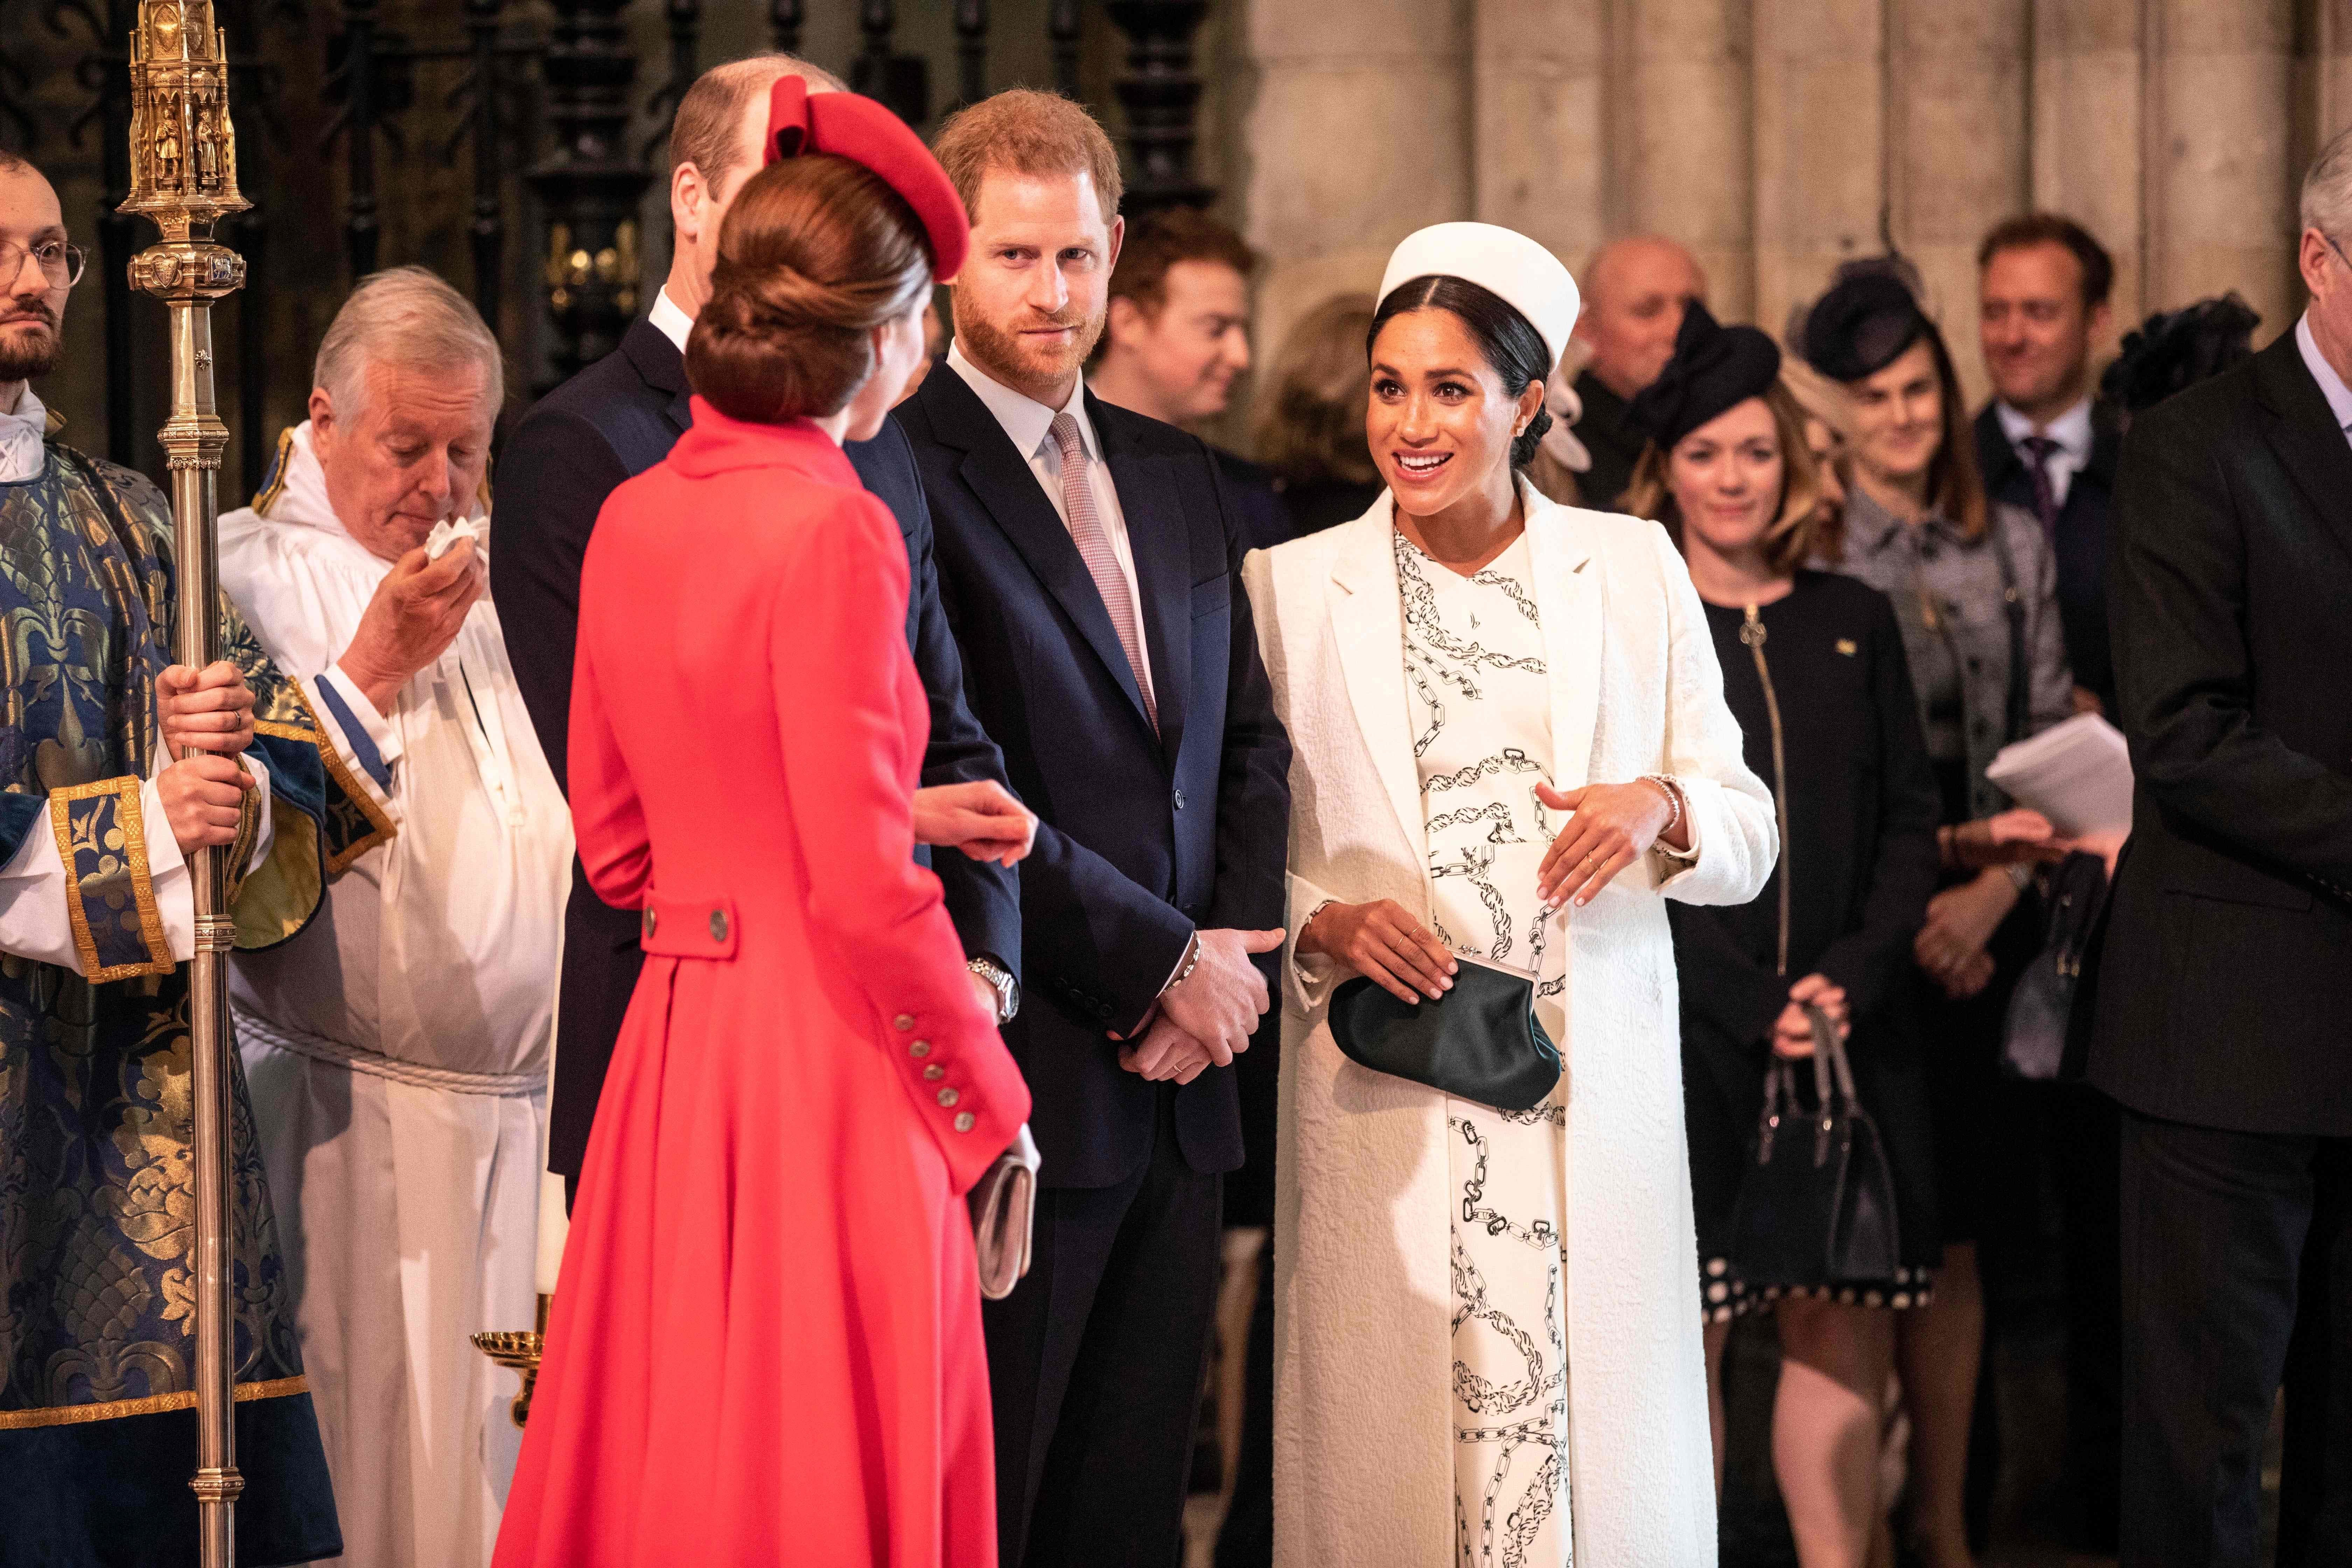 The Duchess of Cambridge (foreground) and Duchess of Sussex greet each other as they attend the Commonwealth Service with oth